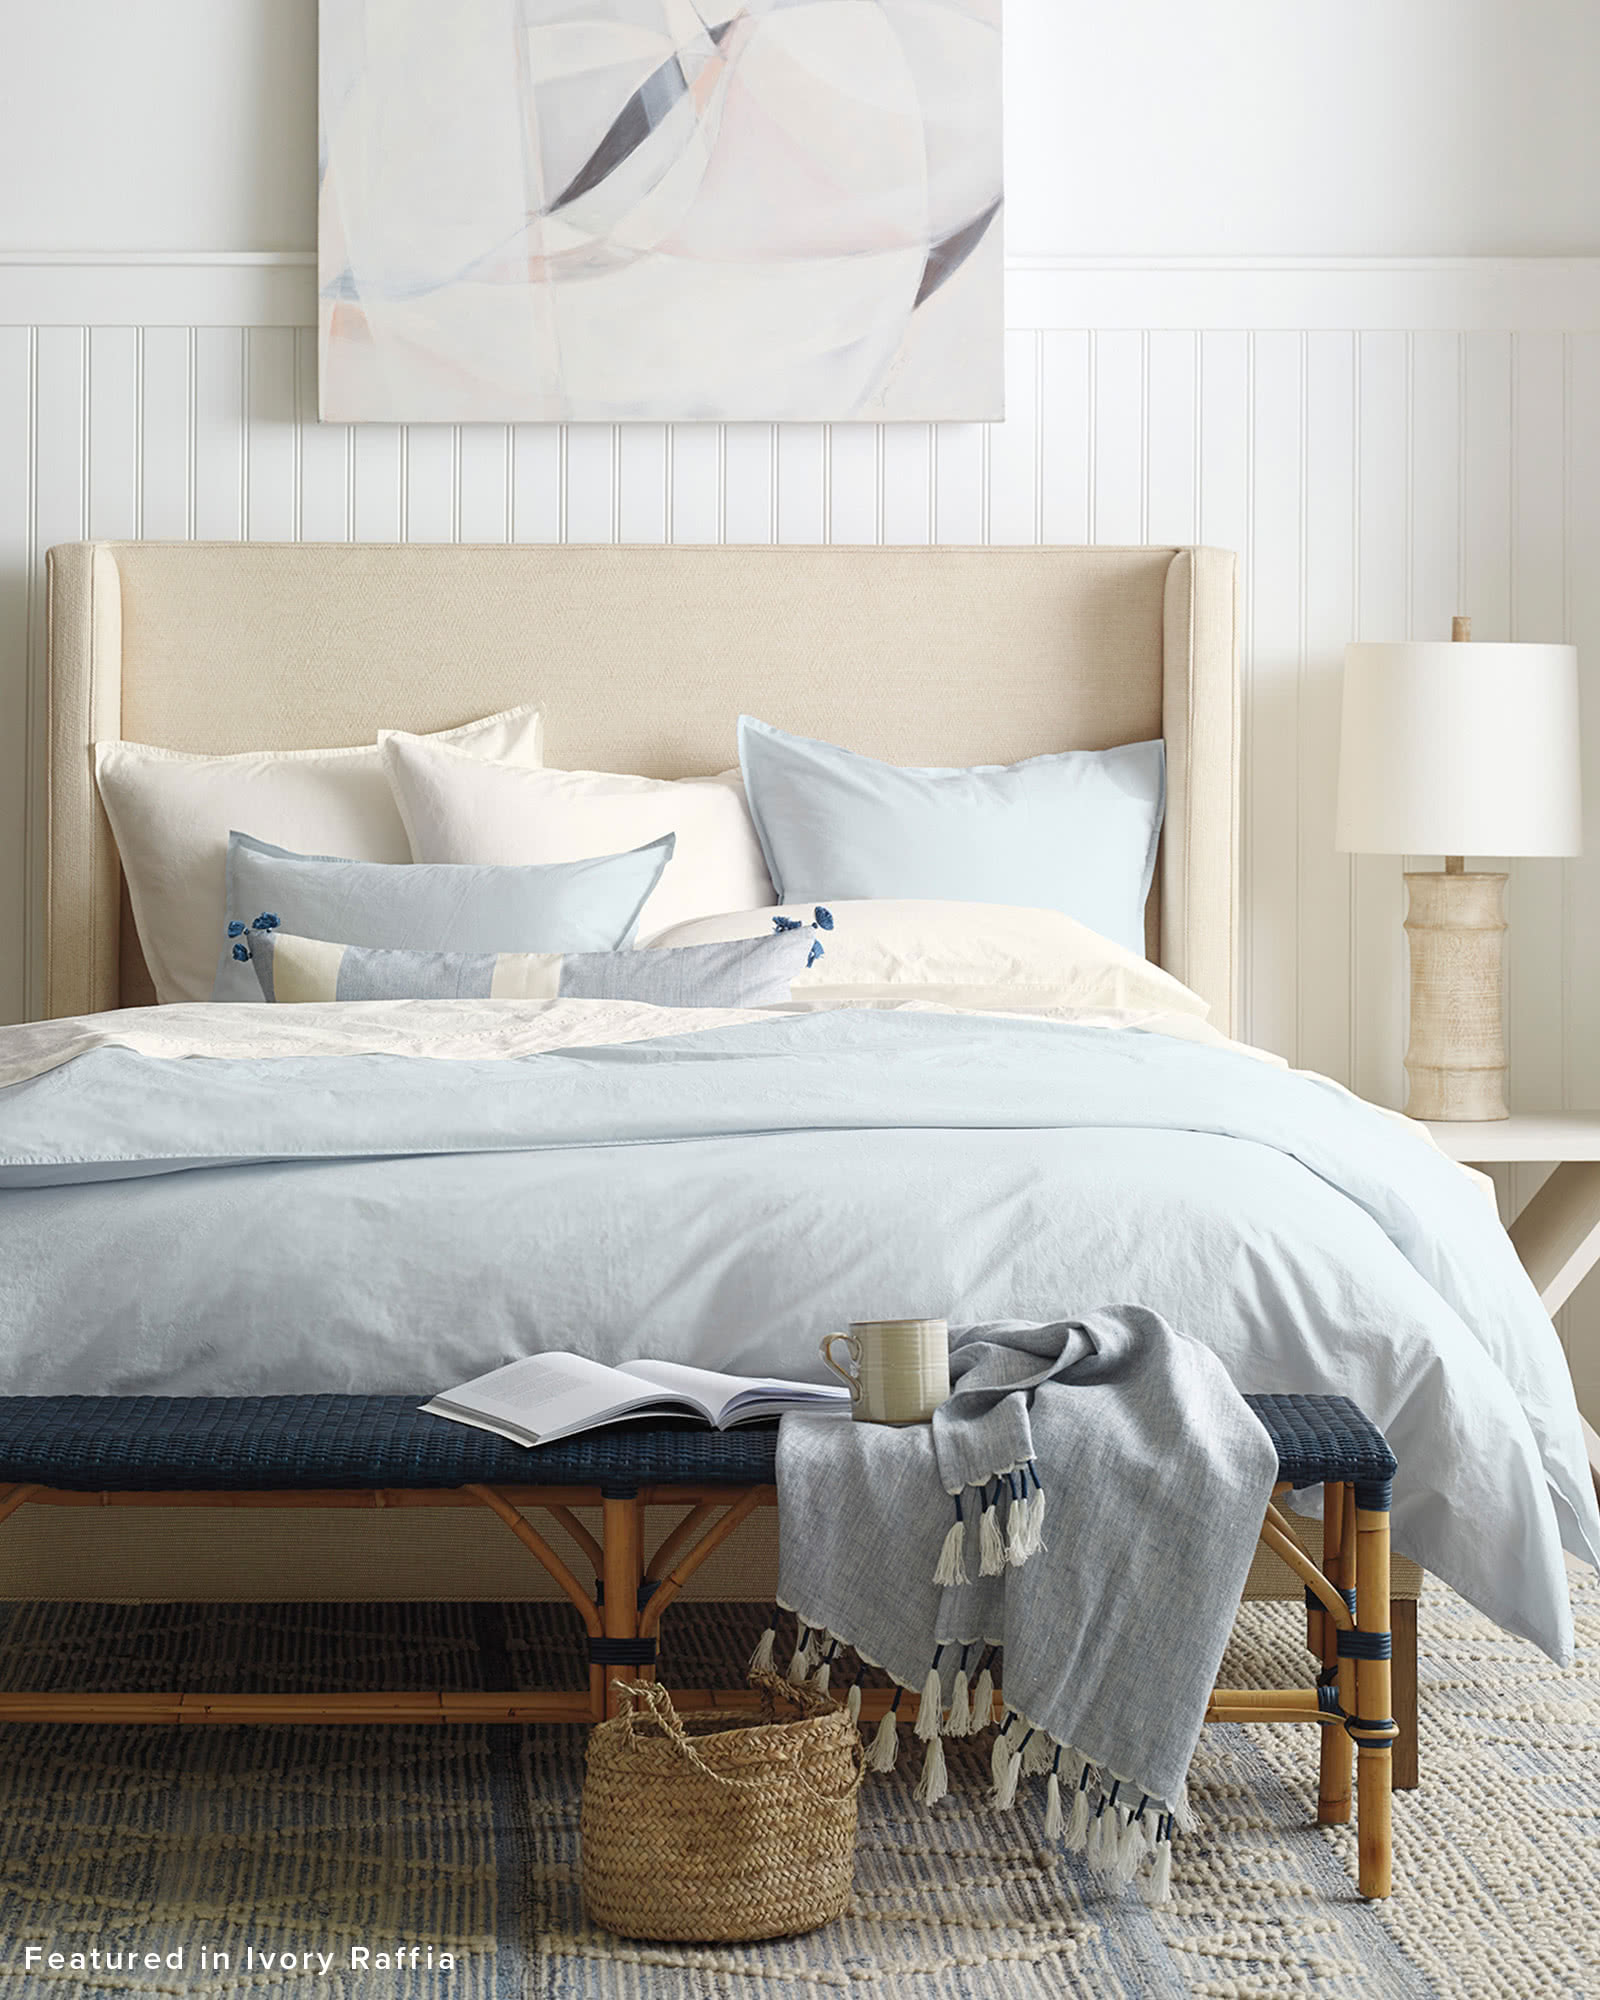 Portofino Washed Percale Duvet Cover, Sky